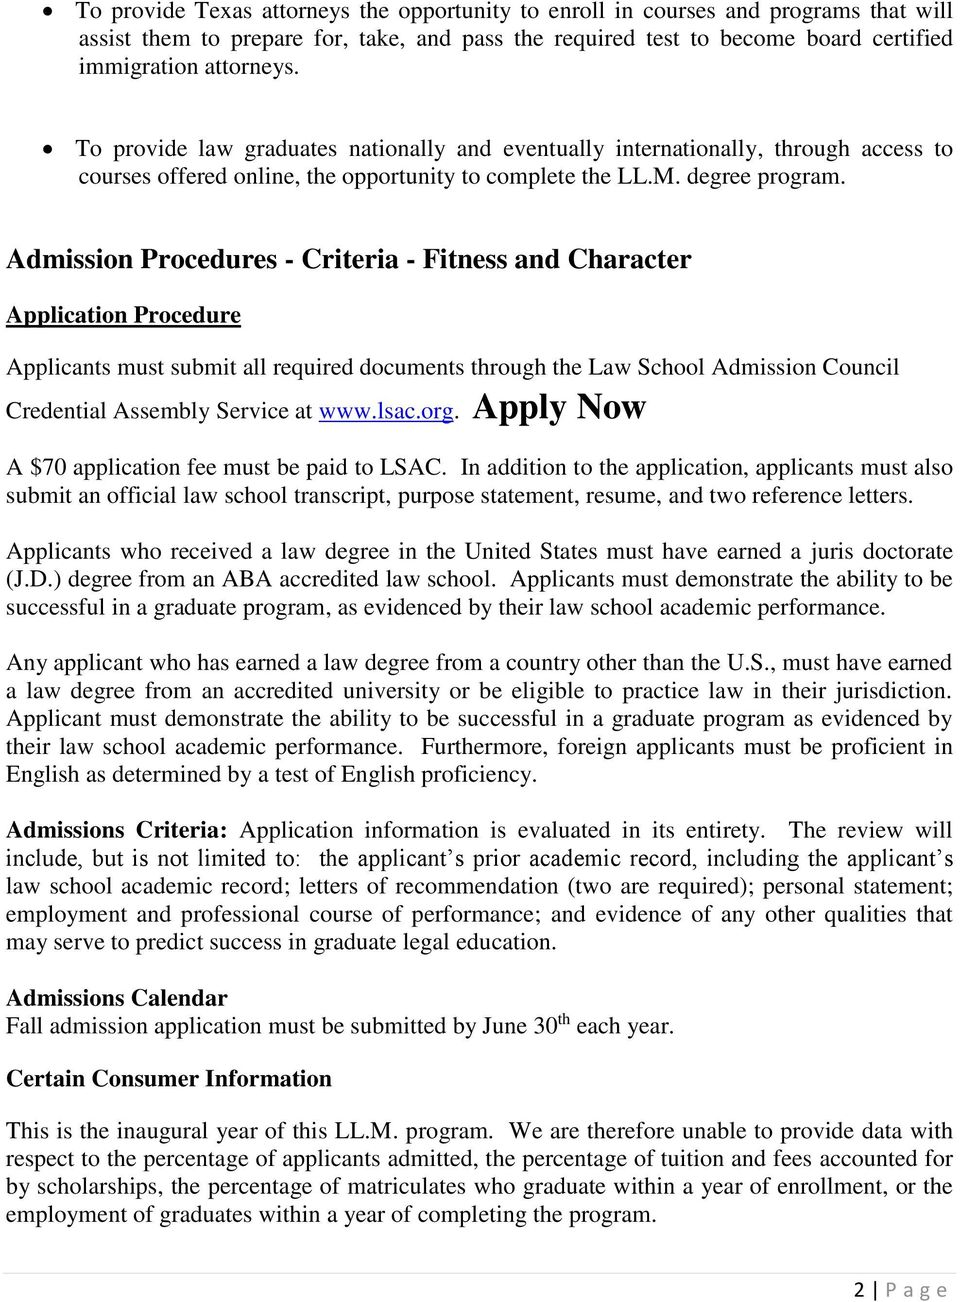 Admission Procedures - Criteria - Fitness and Character Application Procedure Applicants must submit all required documents through the Law School Admission Council Credential Assembly Service at www.